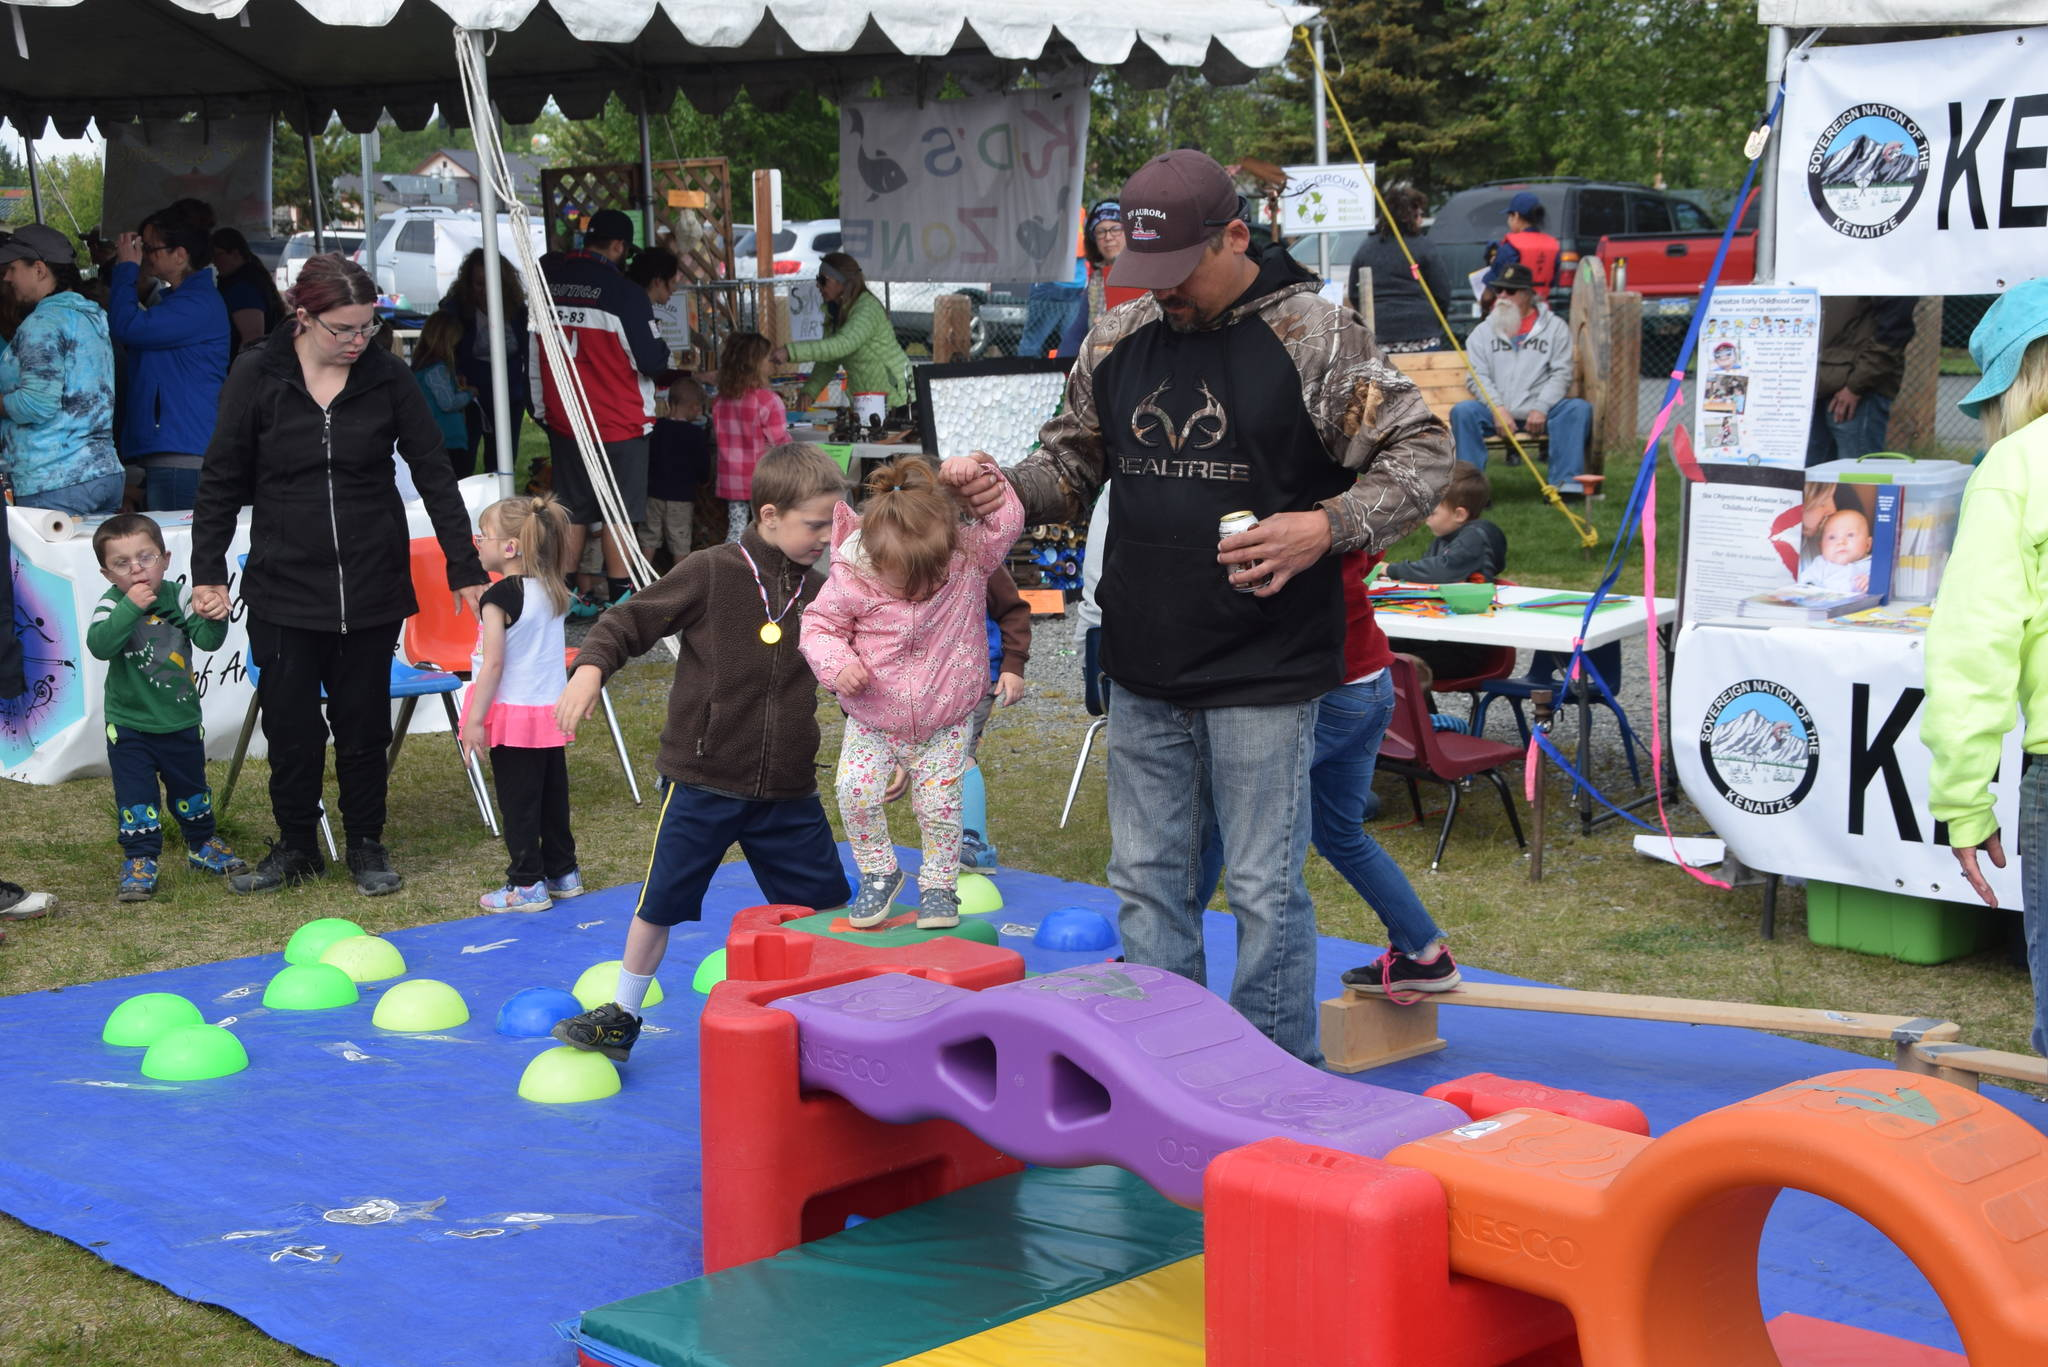 Kids and parents navigate a salmon obstacle course set up by the Kenaitze Early Childhood Center during the Kenai River Festival at Soldotna Creek Park in Soldotna, Alaska on June 8, 2019. (Photo by Brian Mazurek/Peninsula Clarion)